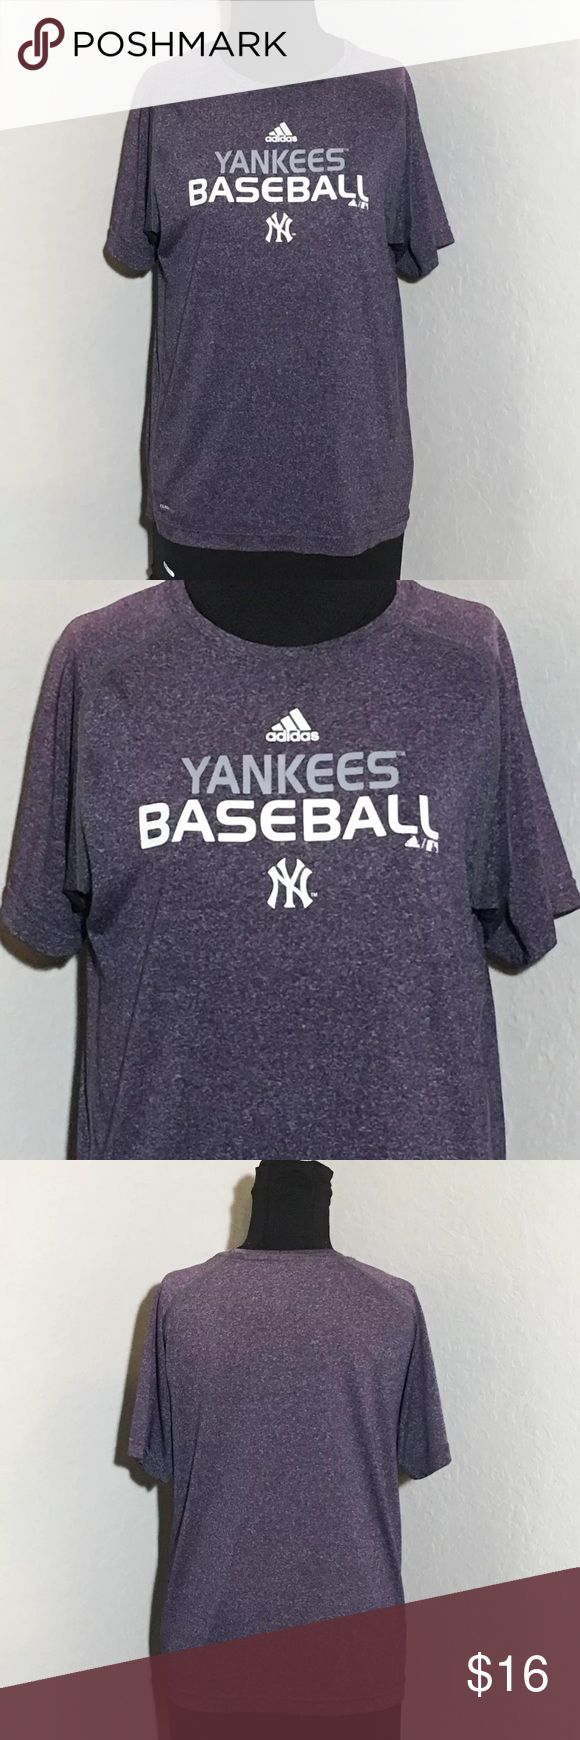 """Adidas Purple Yankee Baseball Fitted T Shirt Sz L Women's adidas Yankees baseball purple graphic t shirt Sz L Measurements 18"""" armpit to armpit, 24"""" shoulder to hem. Excellent condition no flaws adidas Tops Tees - Short Sleeve"""